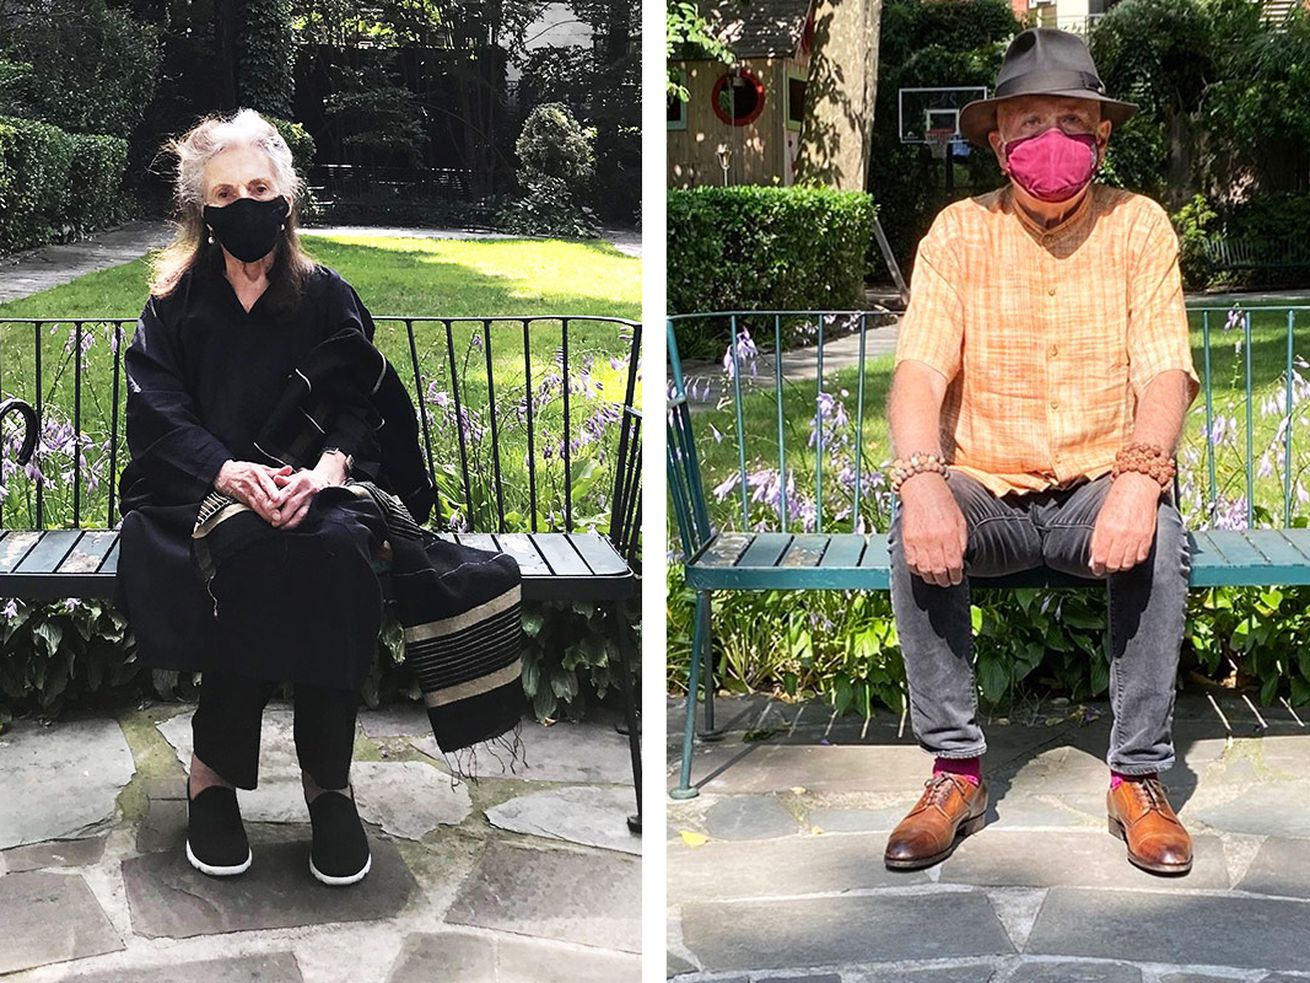 Two Legendary NYC Artists in Their Once-Bohemian Village Garden